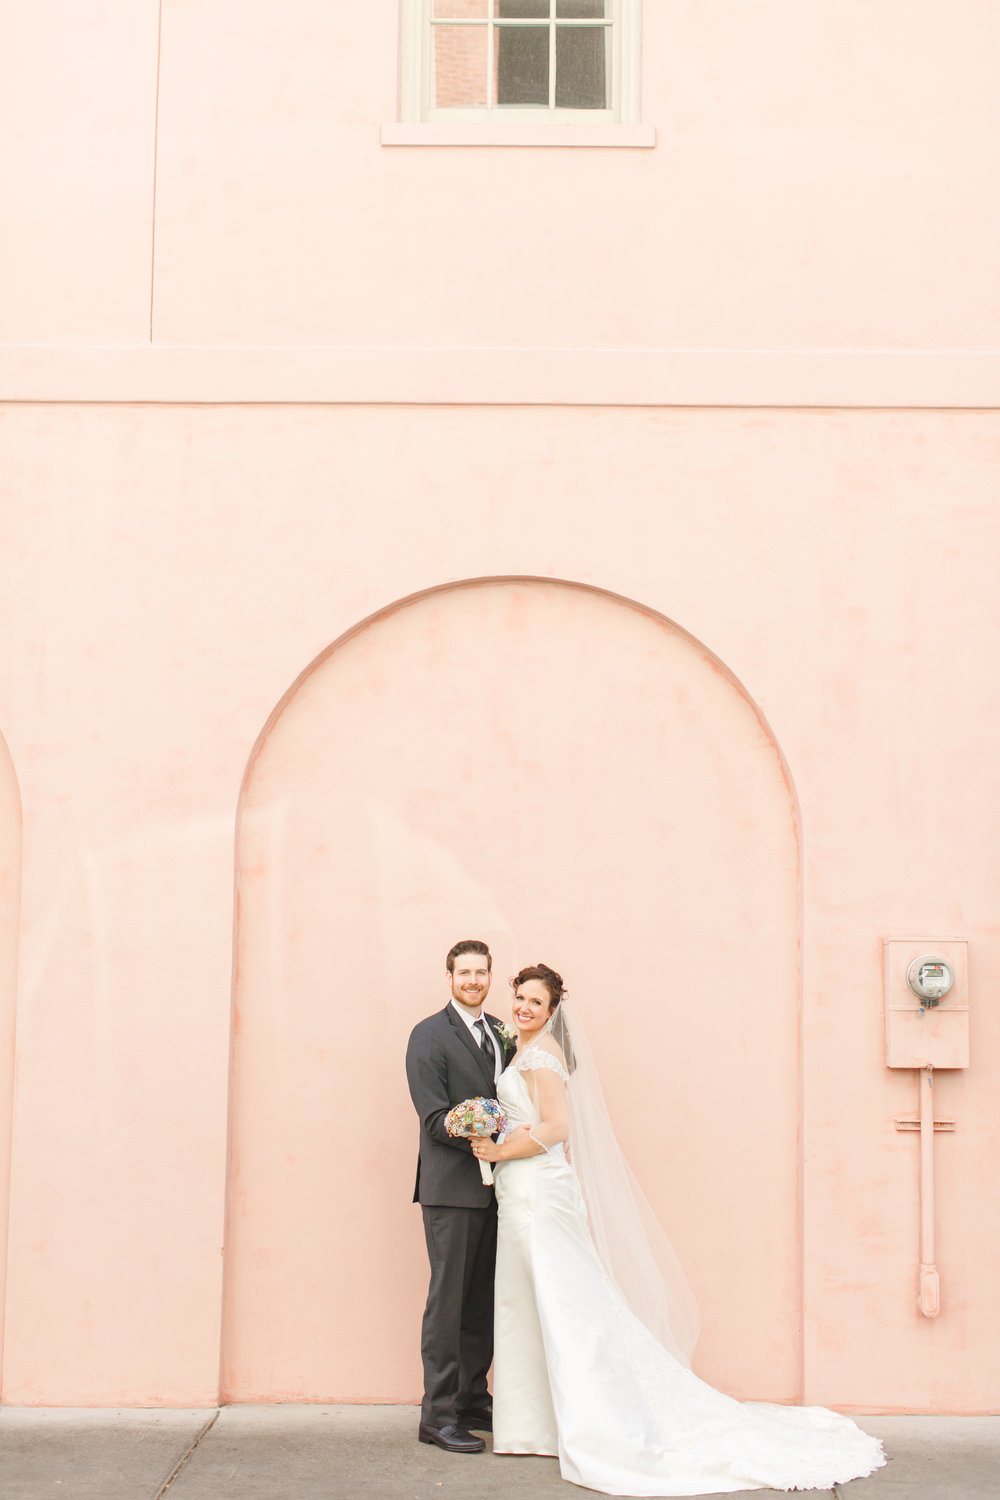 ivory-and-beau-bridal-boutique-aubrie-and-adam-the-happy-bloom-photography-savannah-wedding-planner-savannah-wedding-coordinator-28.jpg